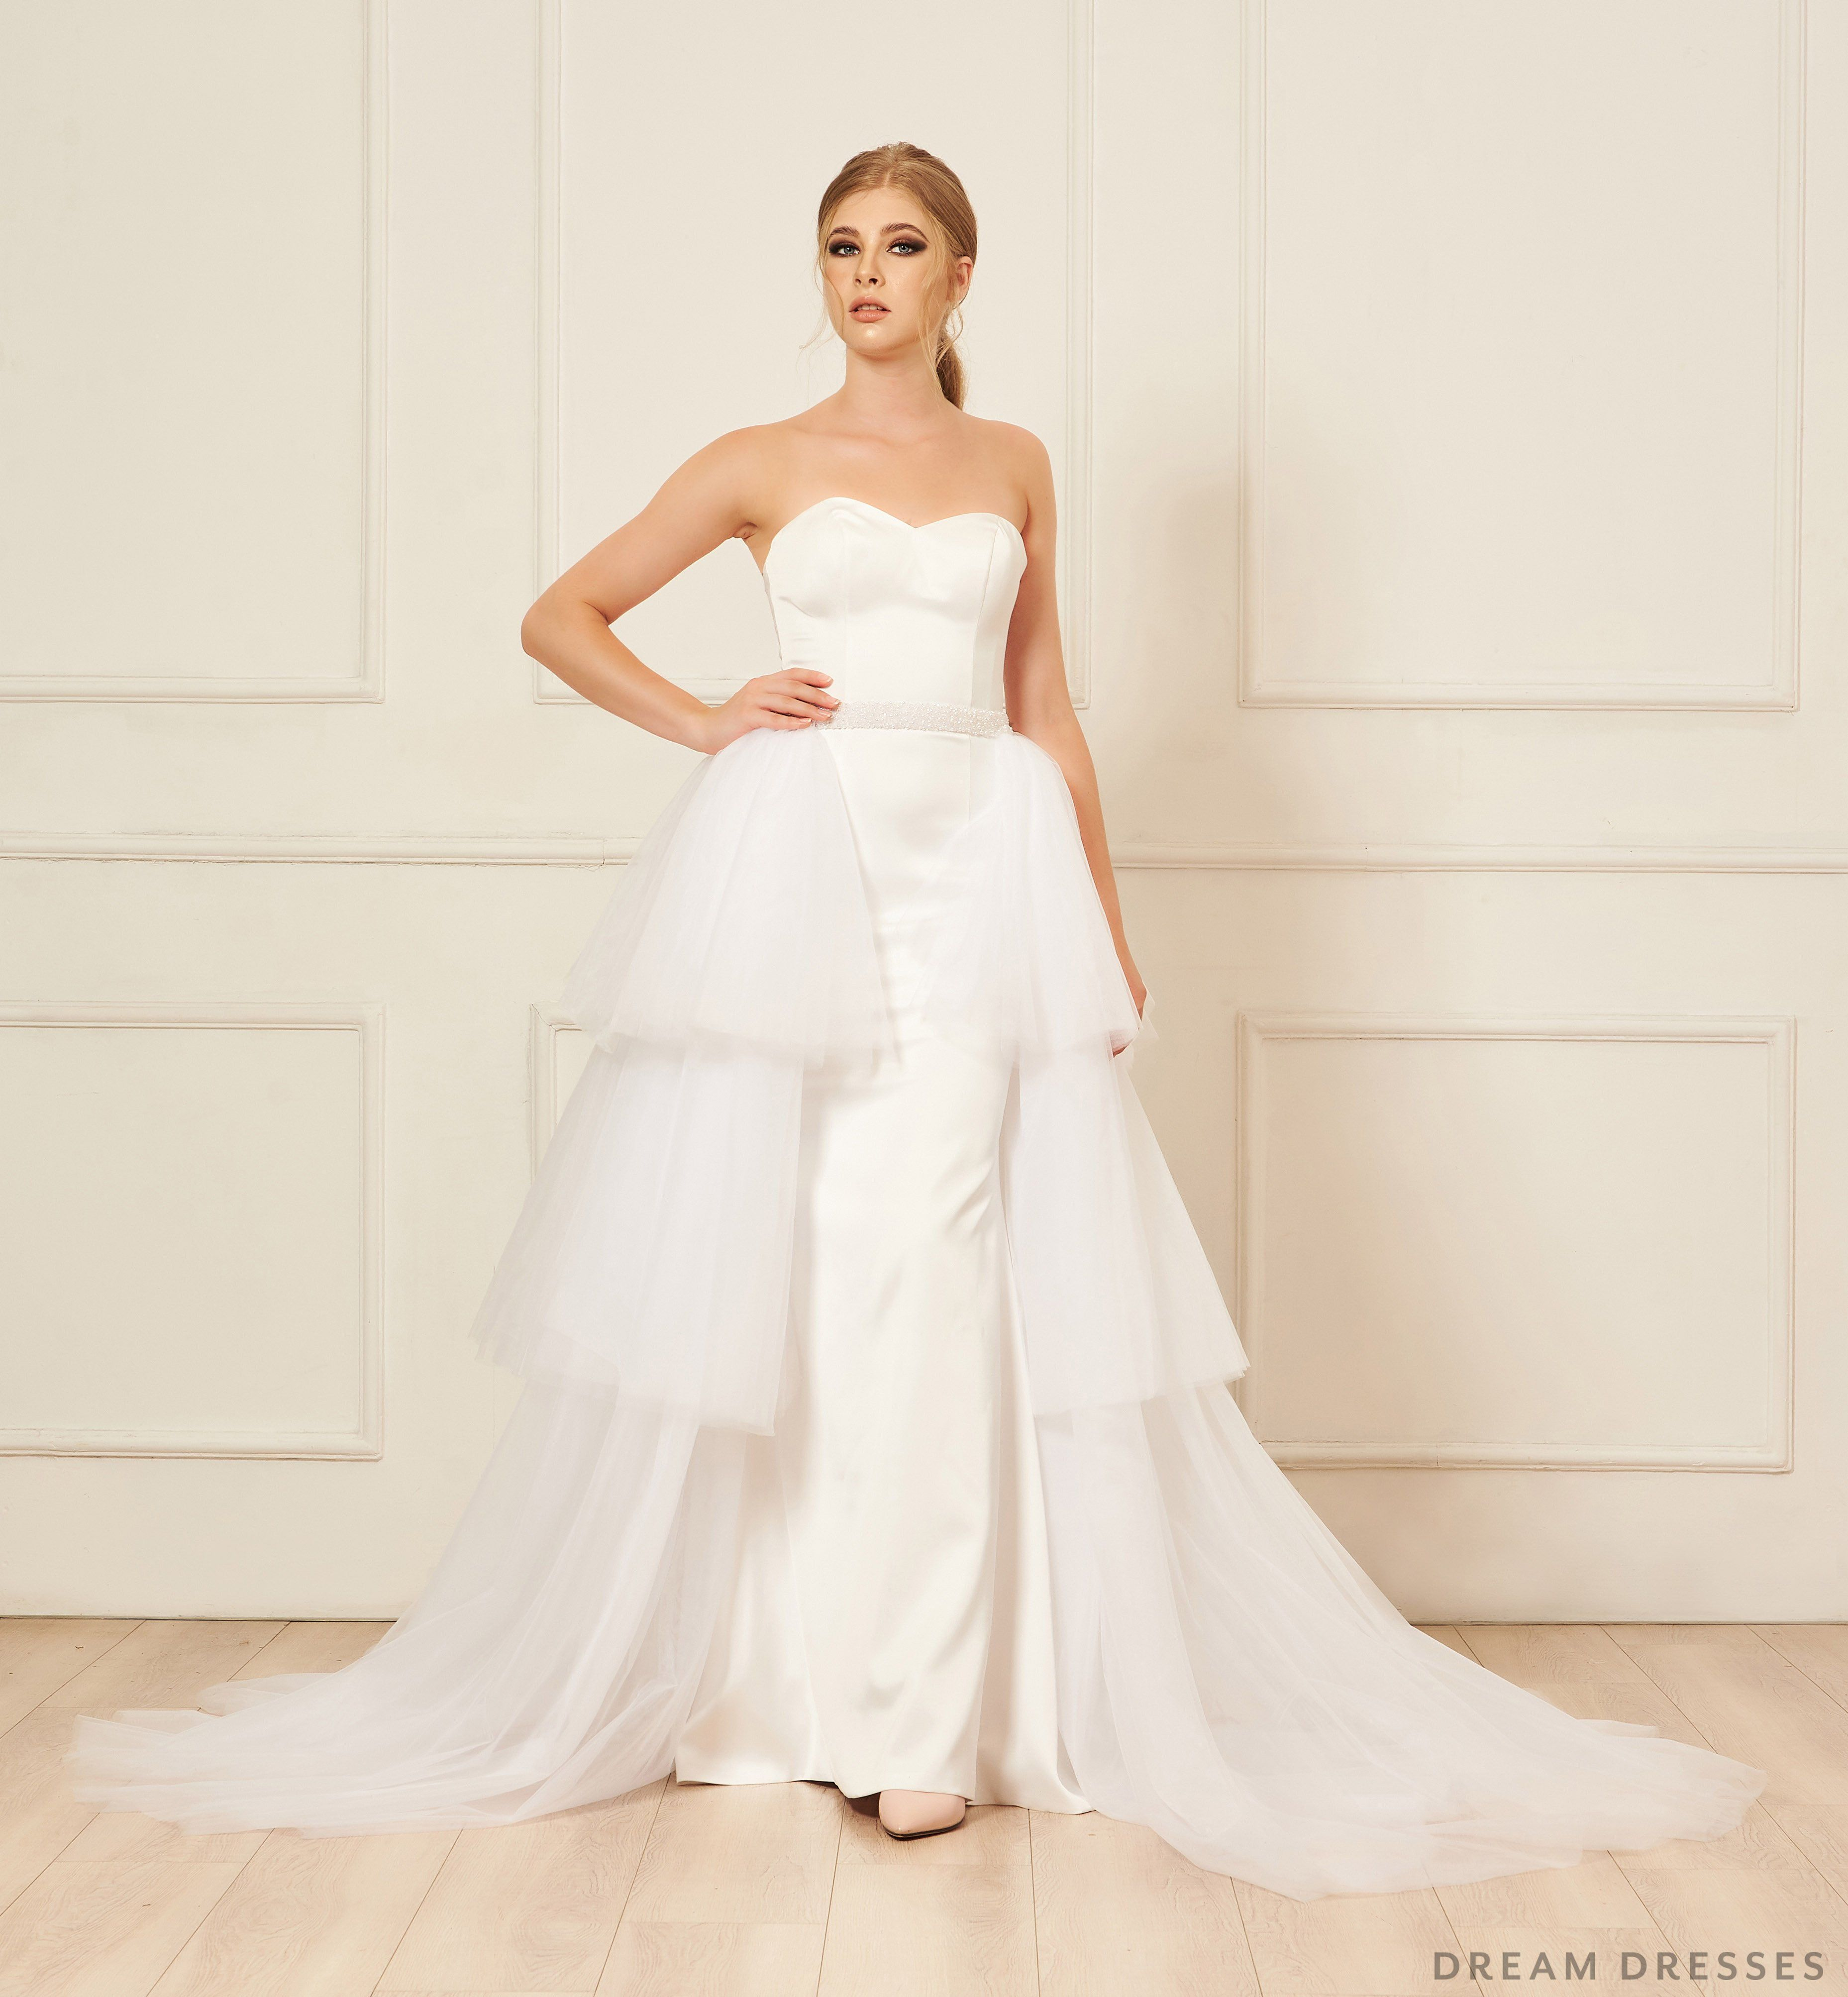 Removable Tiered Overskirt Dream Dresses by P.M.N